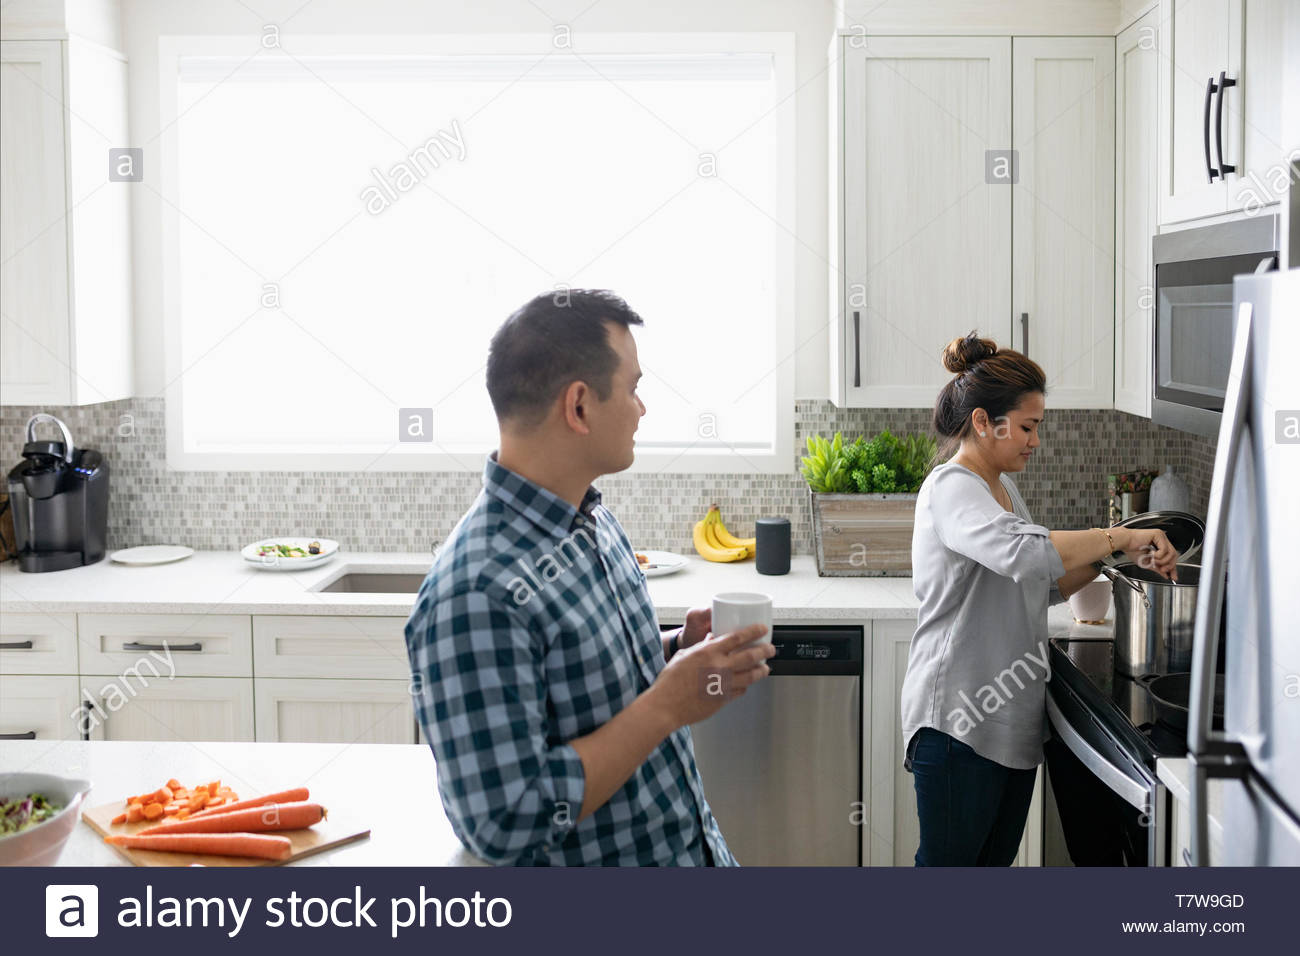 Couple cooking in kitchen Stock Photo